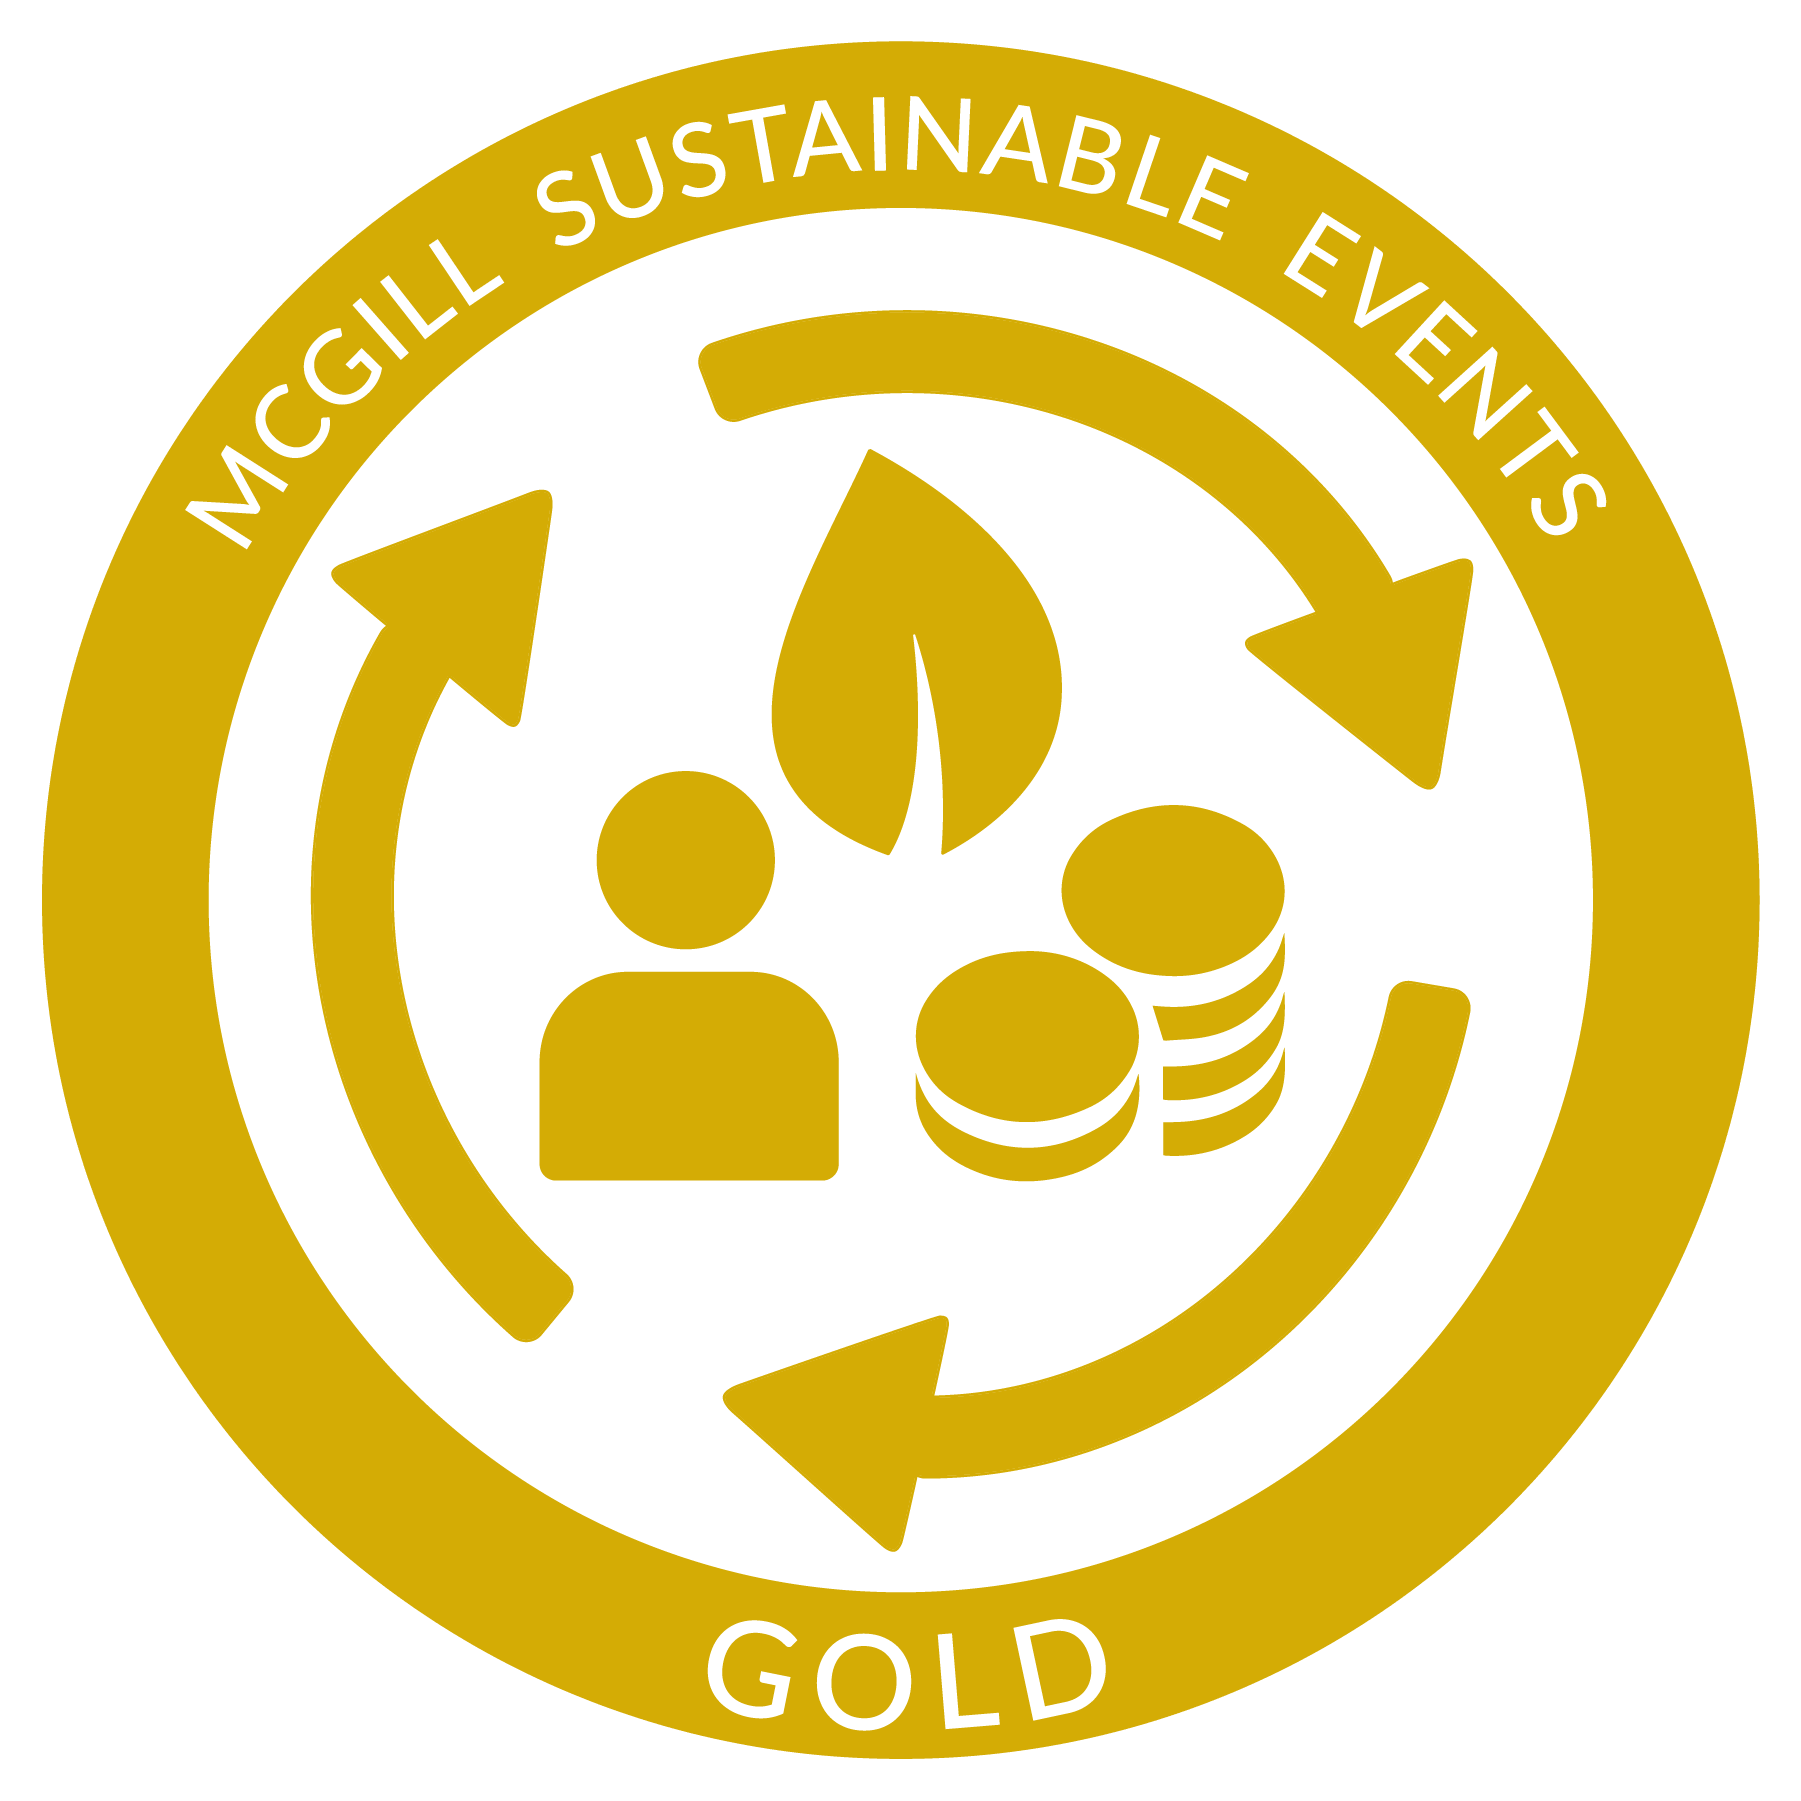 McGill Sustainable events GOLD